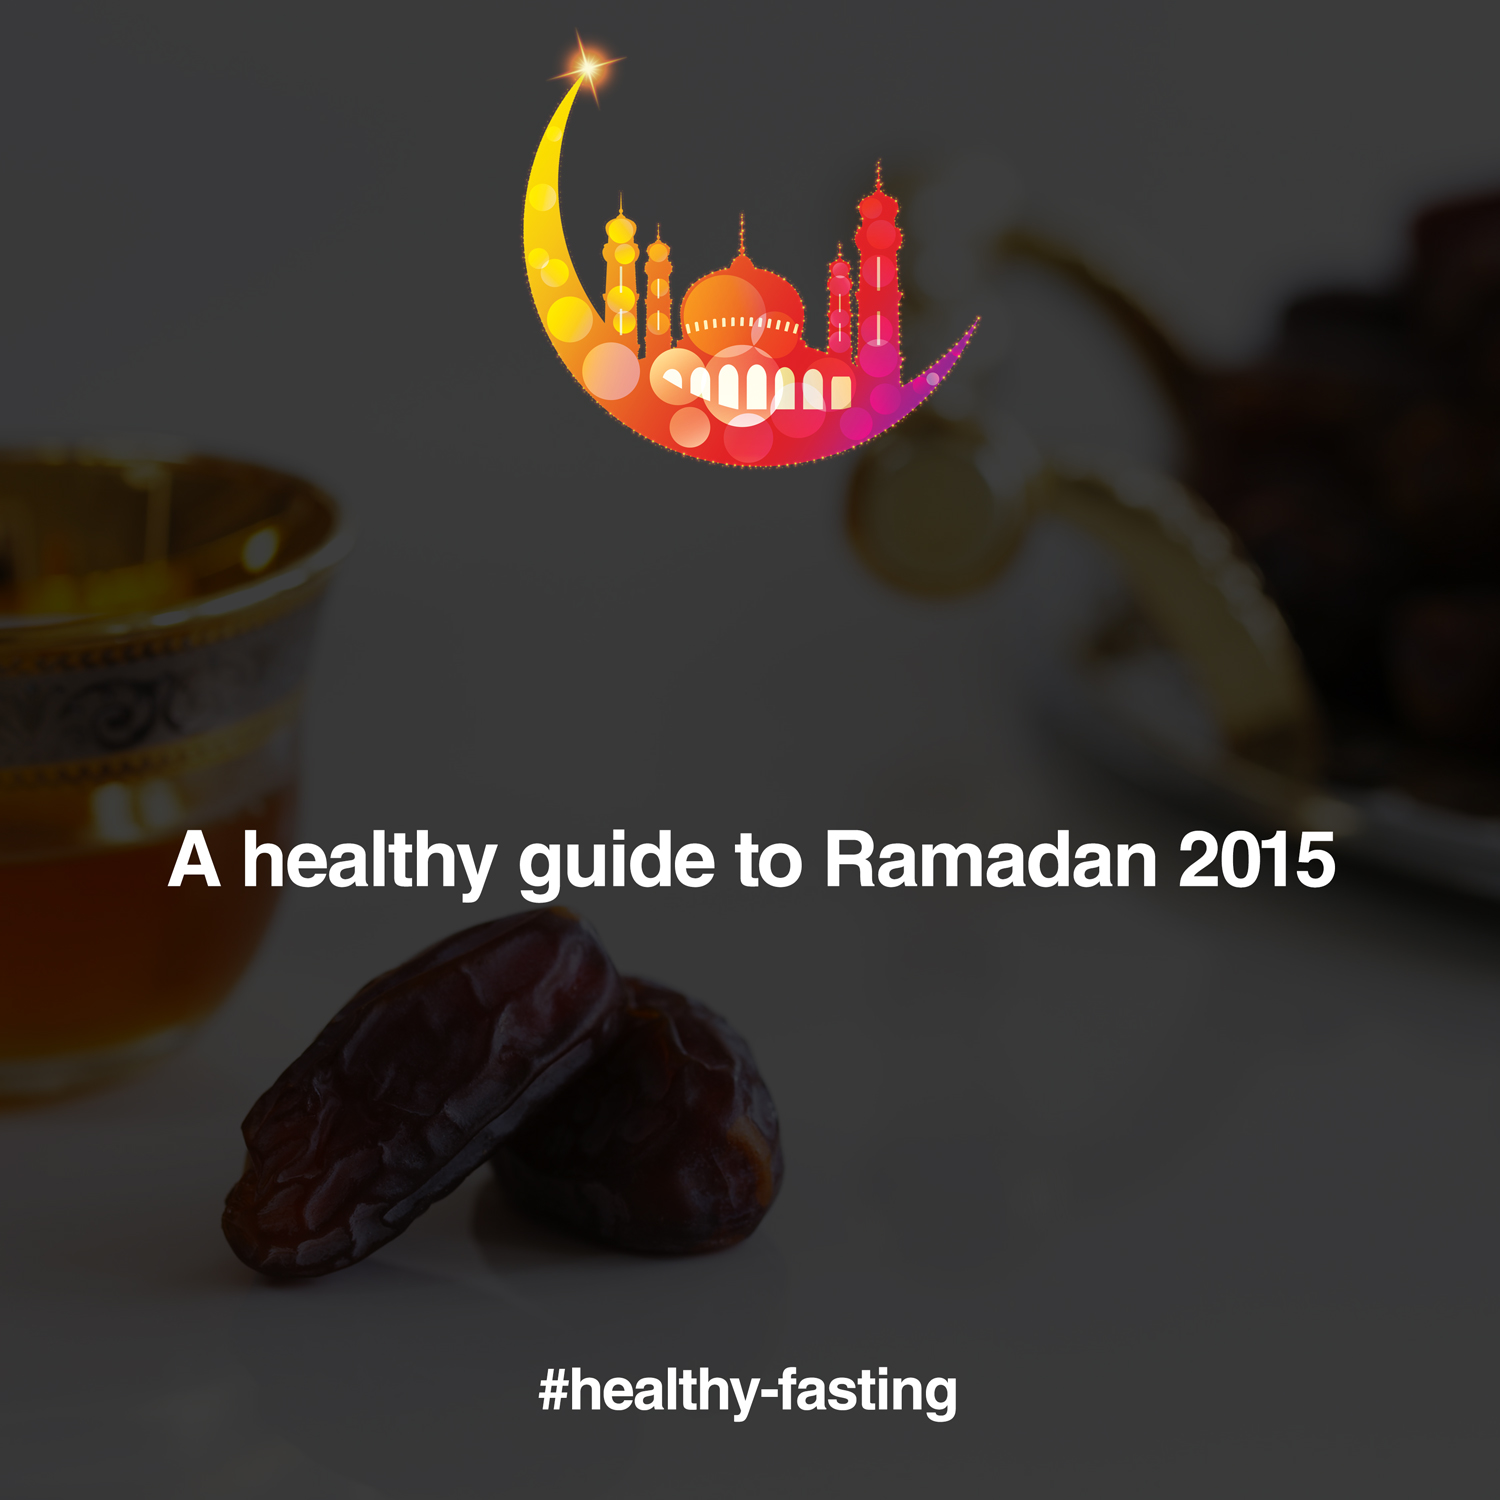 A healthy guide to Ramadan